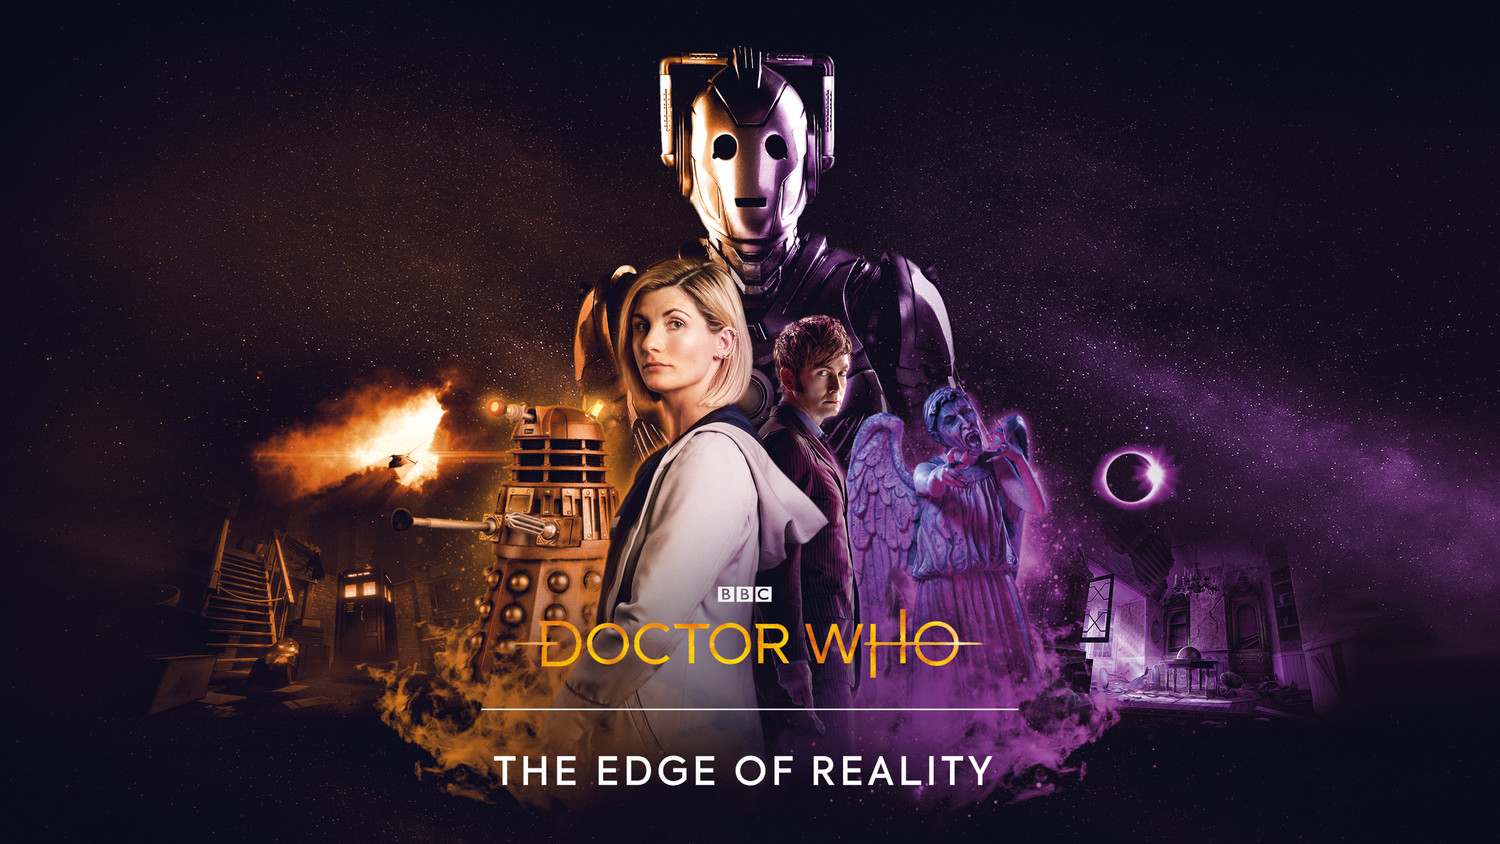 Doctor-Who-The-Edge-of-Reality.jpg